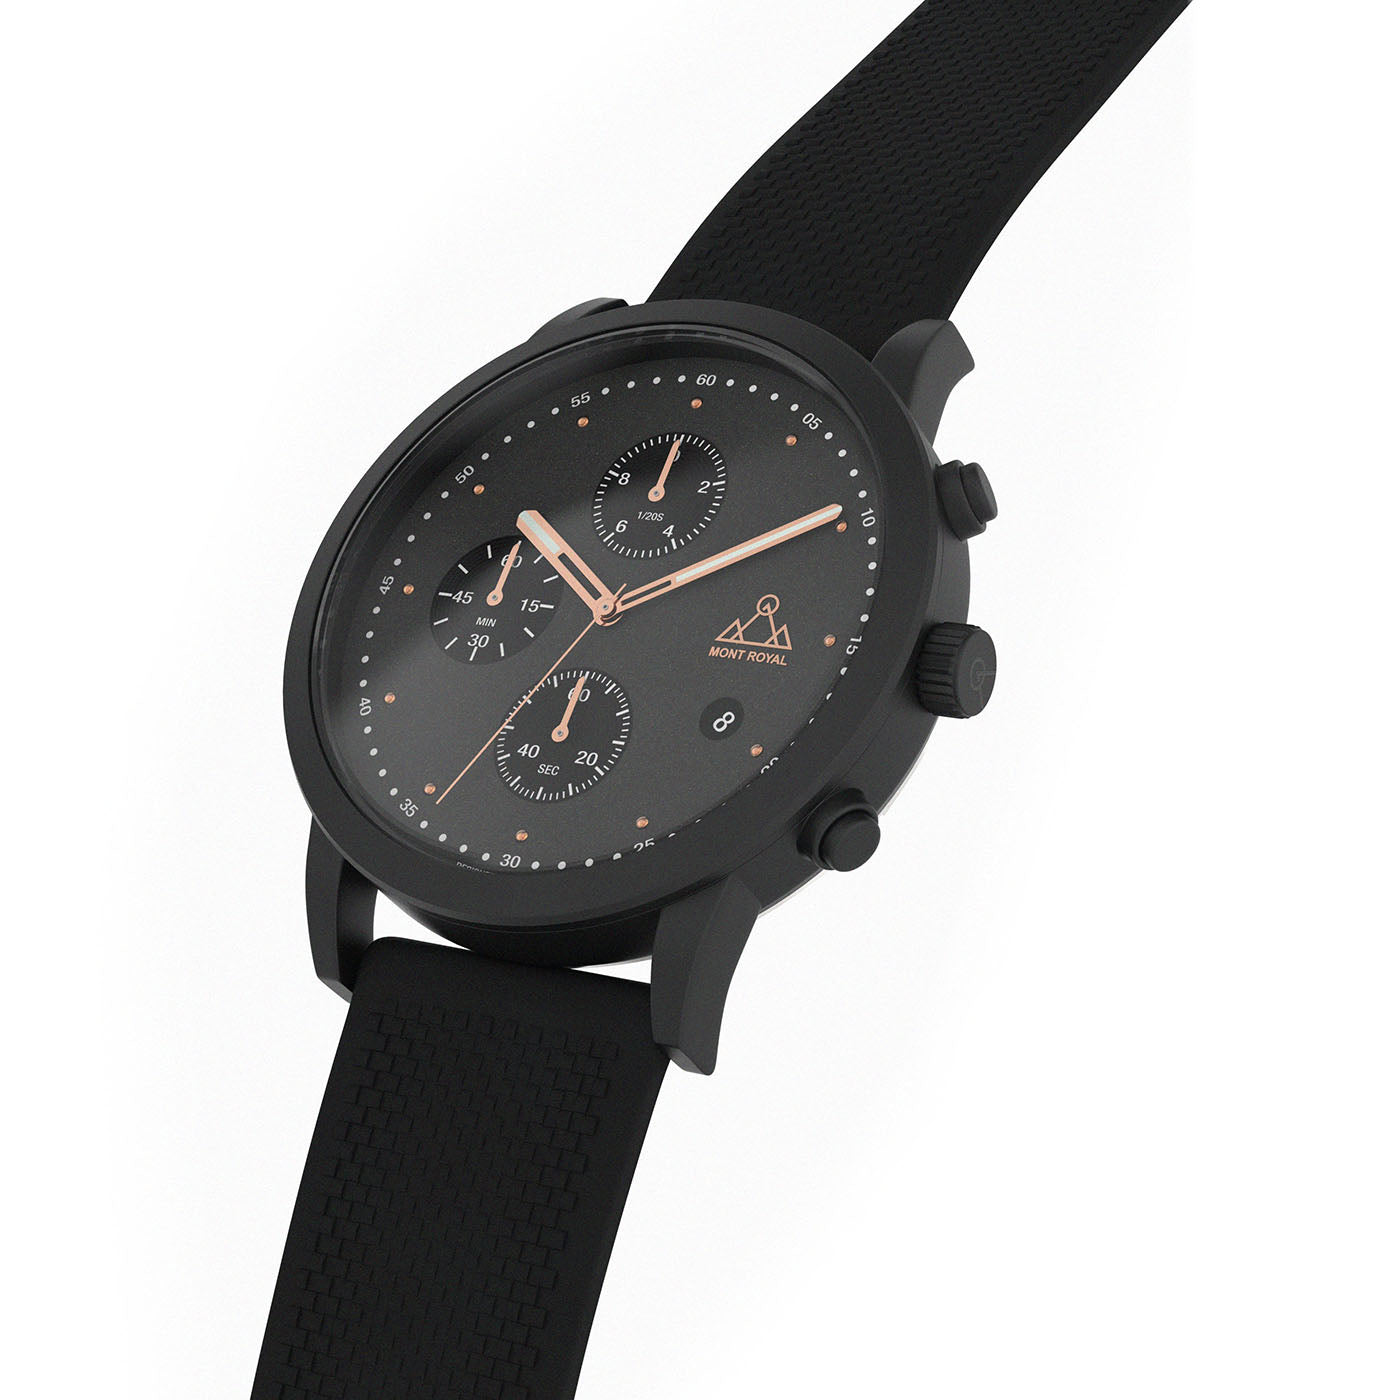 All Black + Silicone chronograph Watch